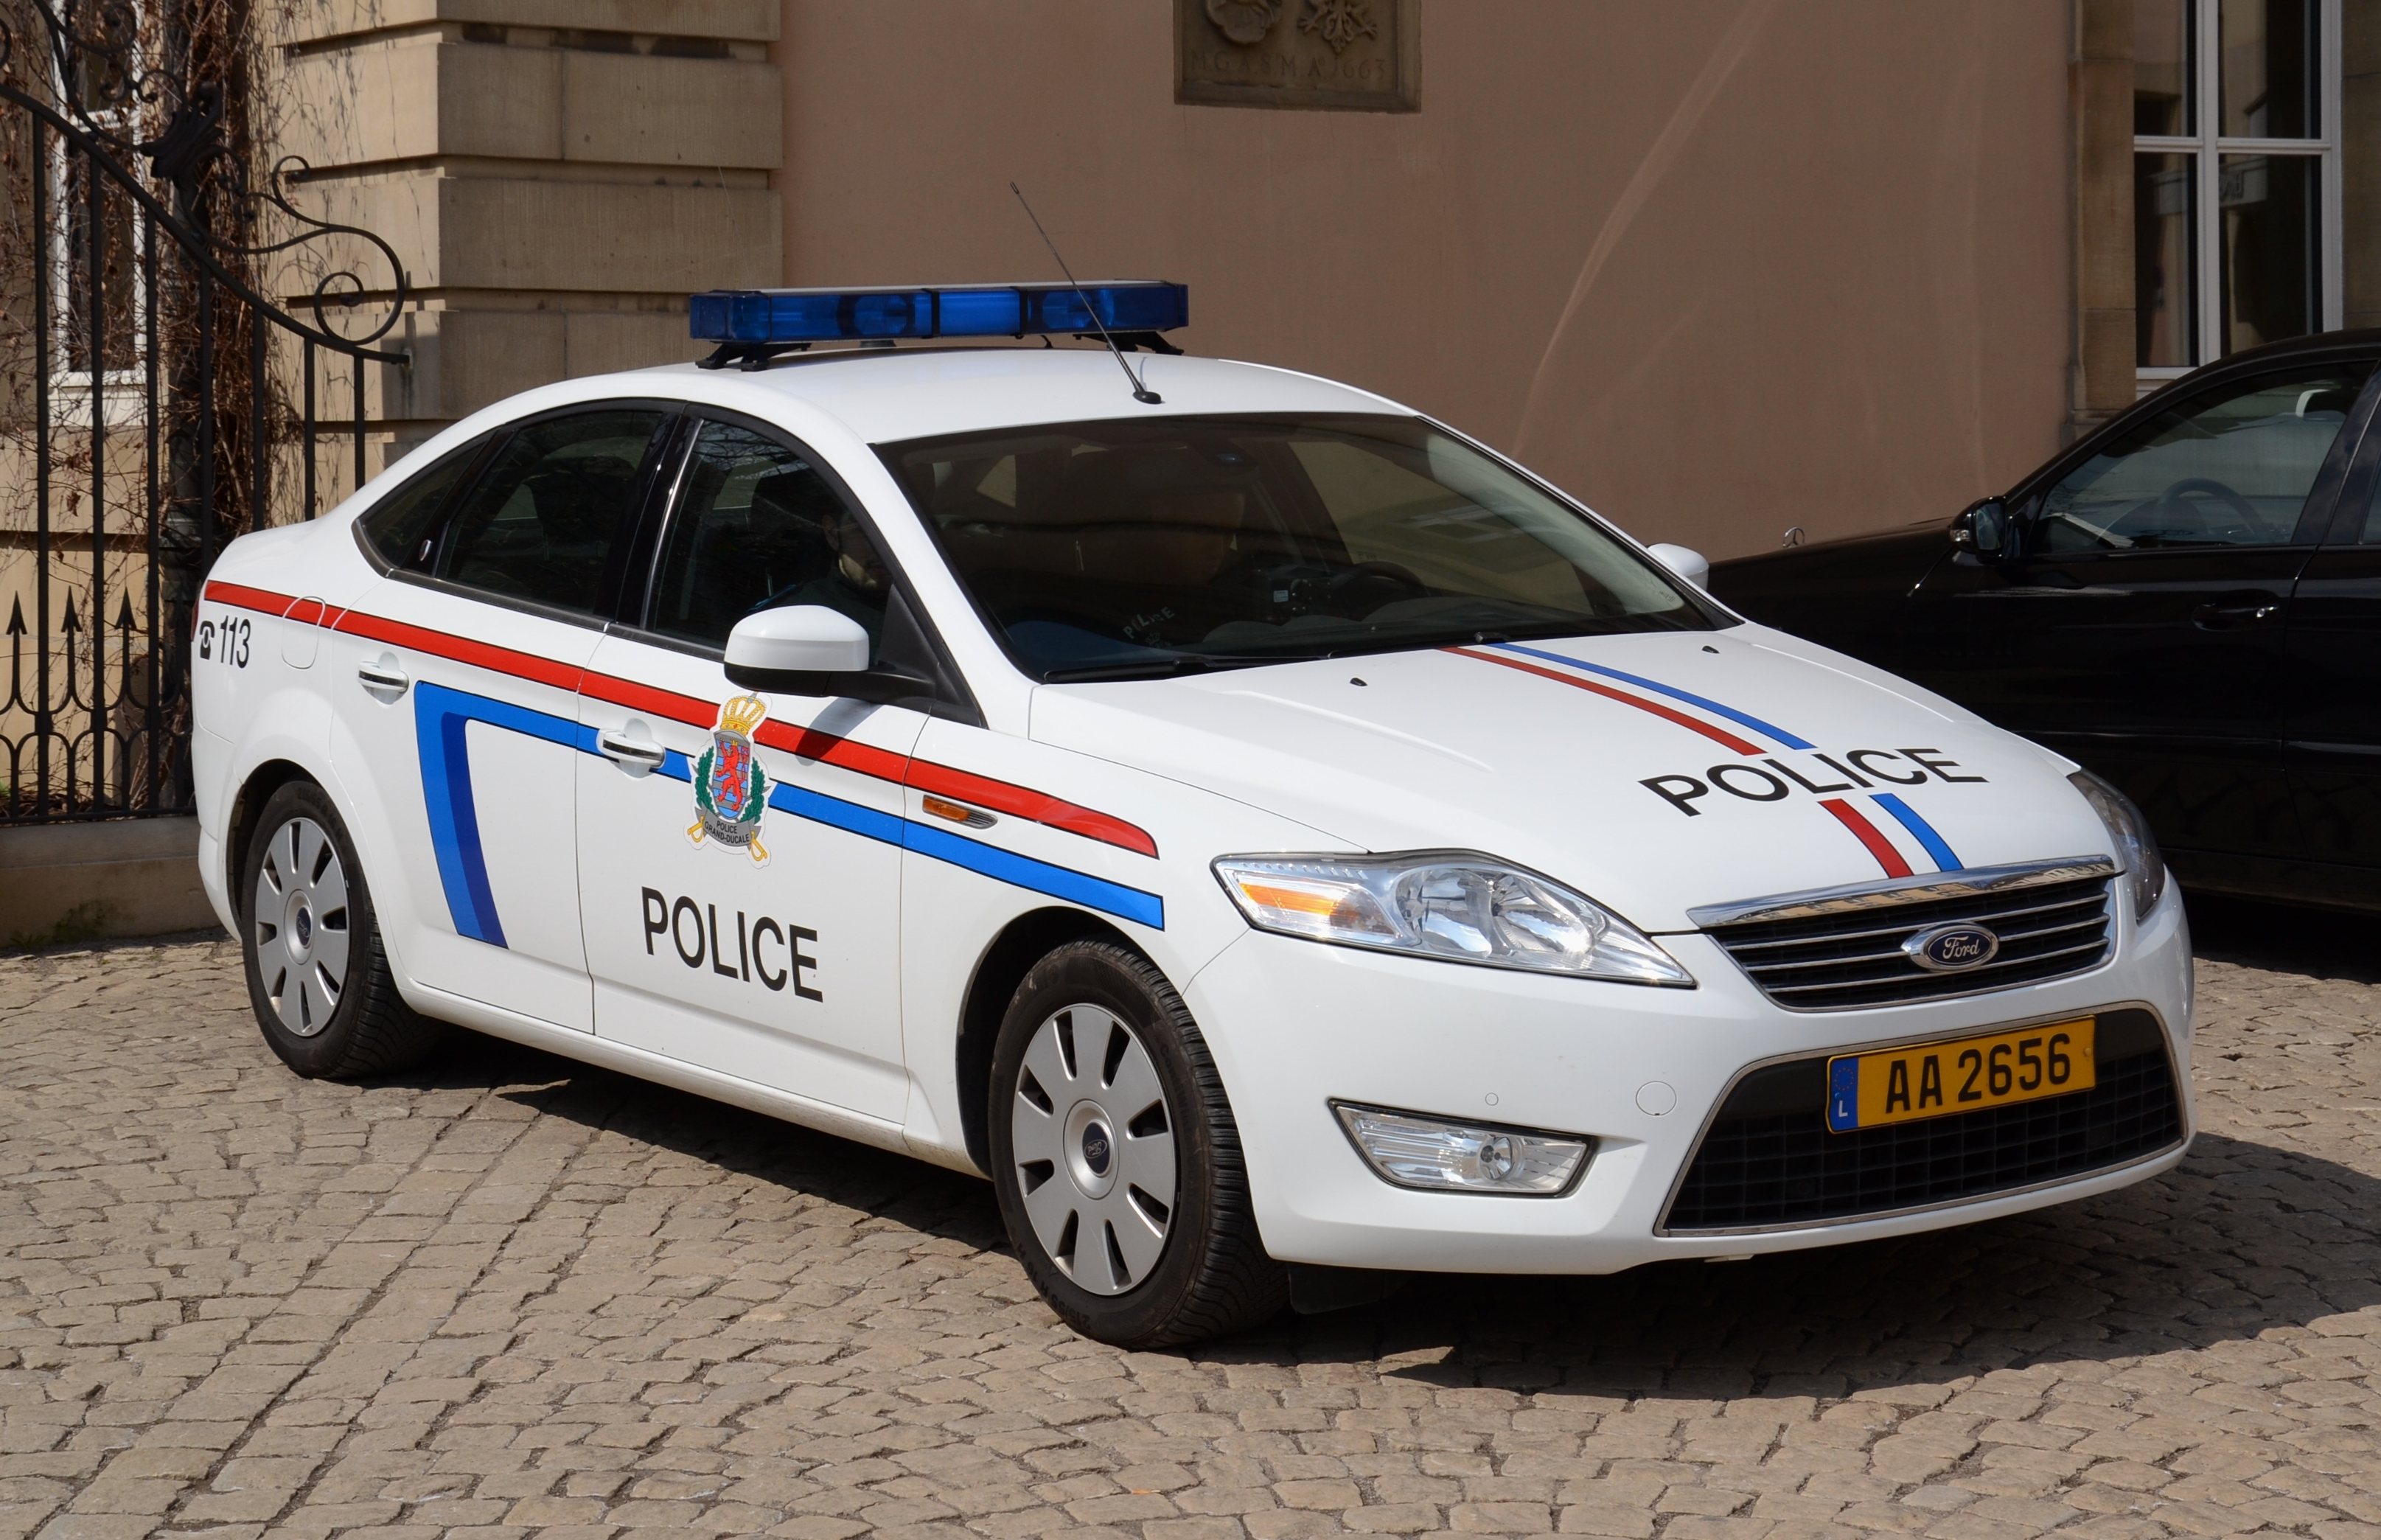 File:Grand Ducal Police car (Ford) in Luxembourg City.jpg ...